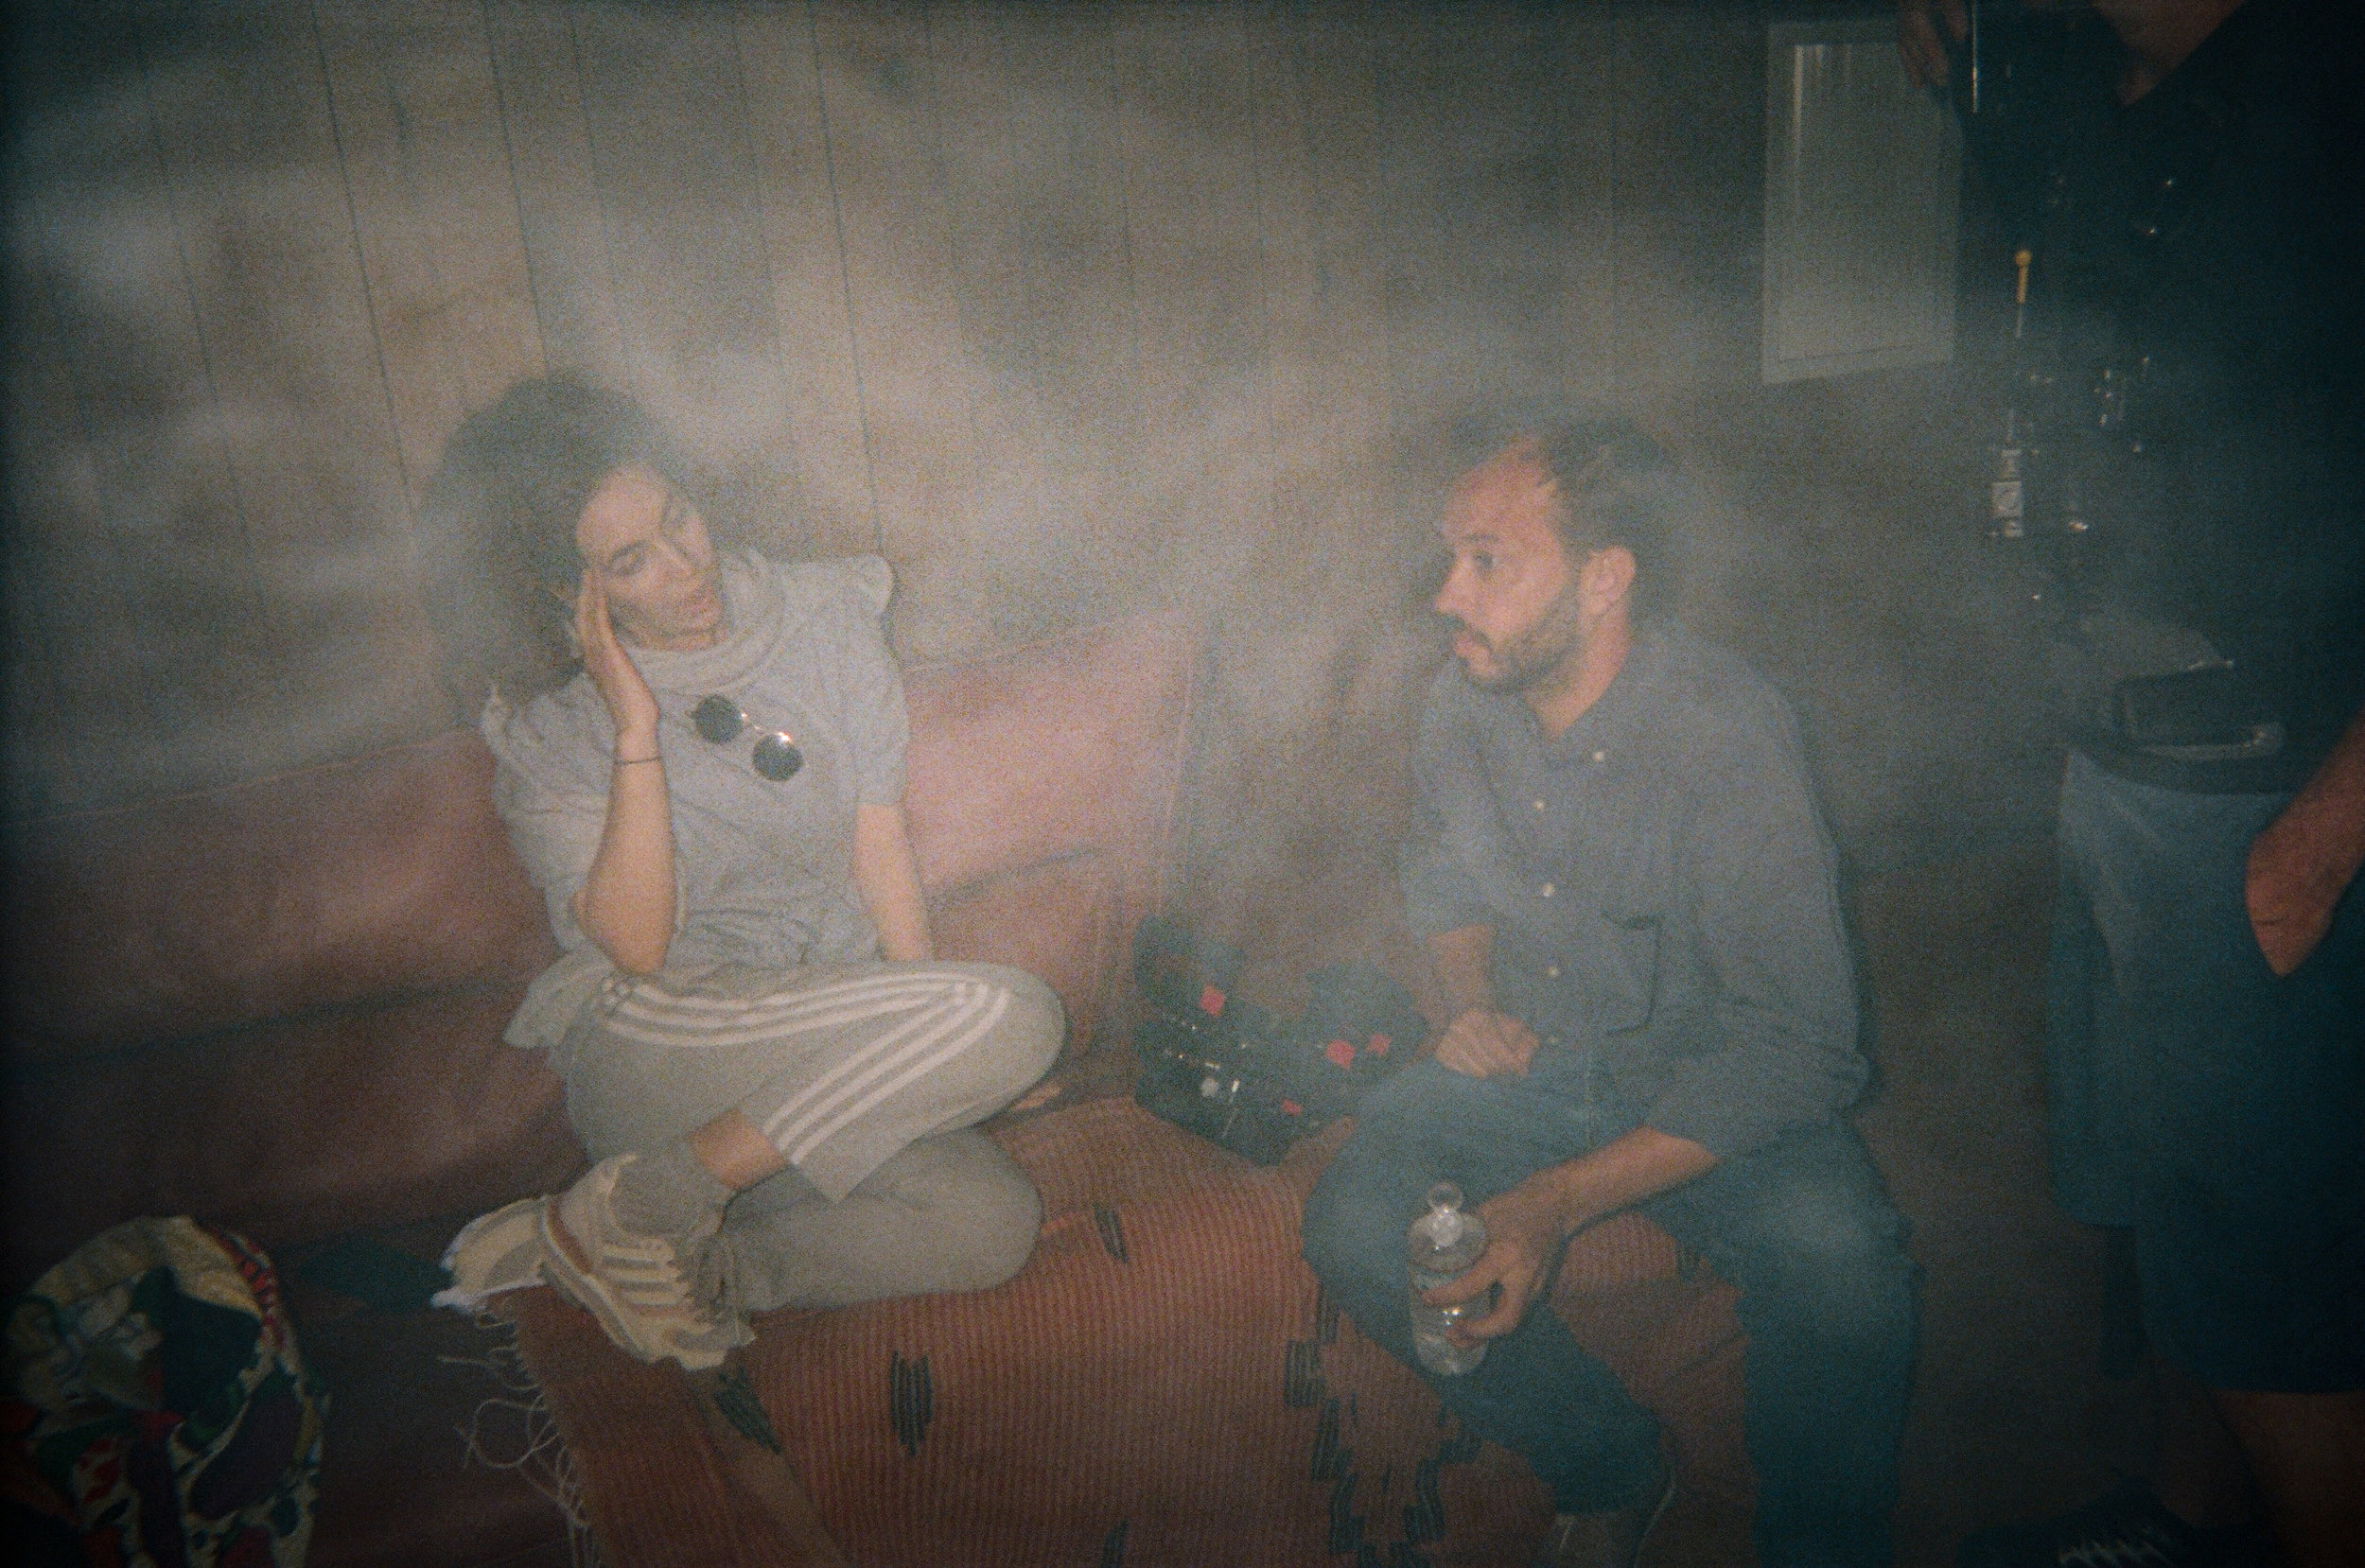 Boogie 'Everything's For Sale' Behind the Scenes by Emari Traffie